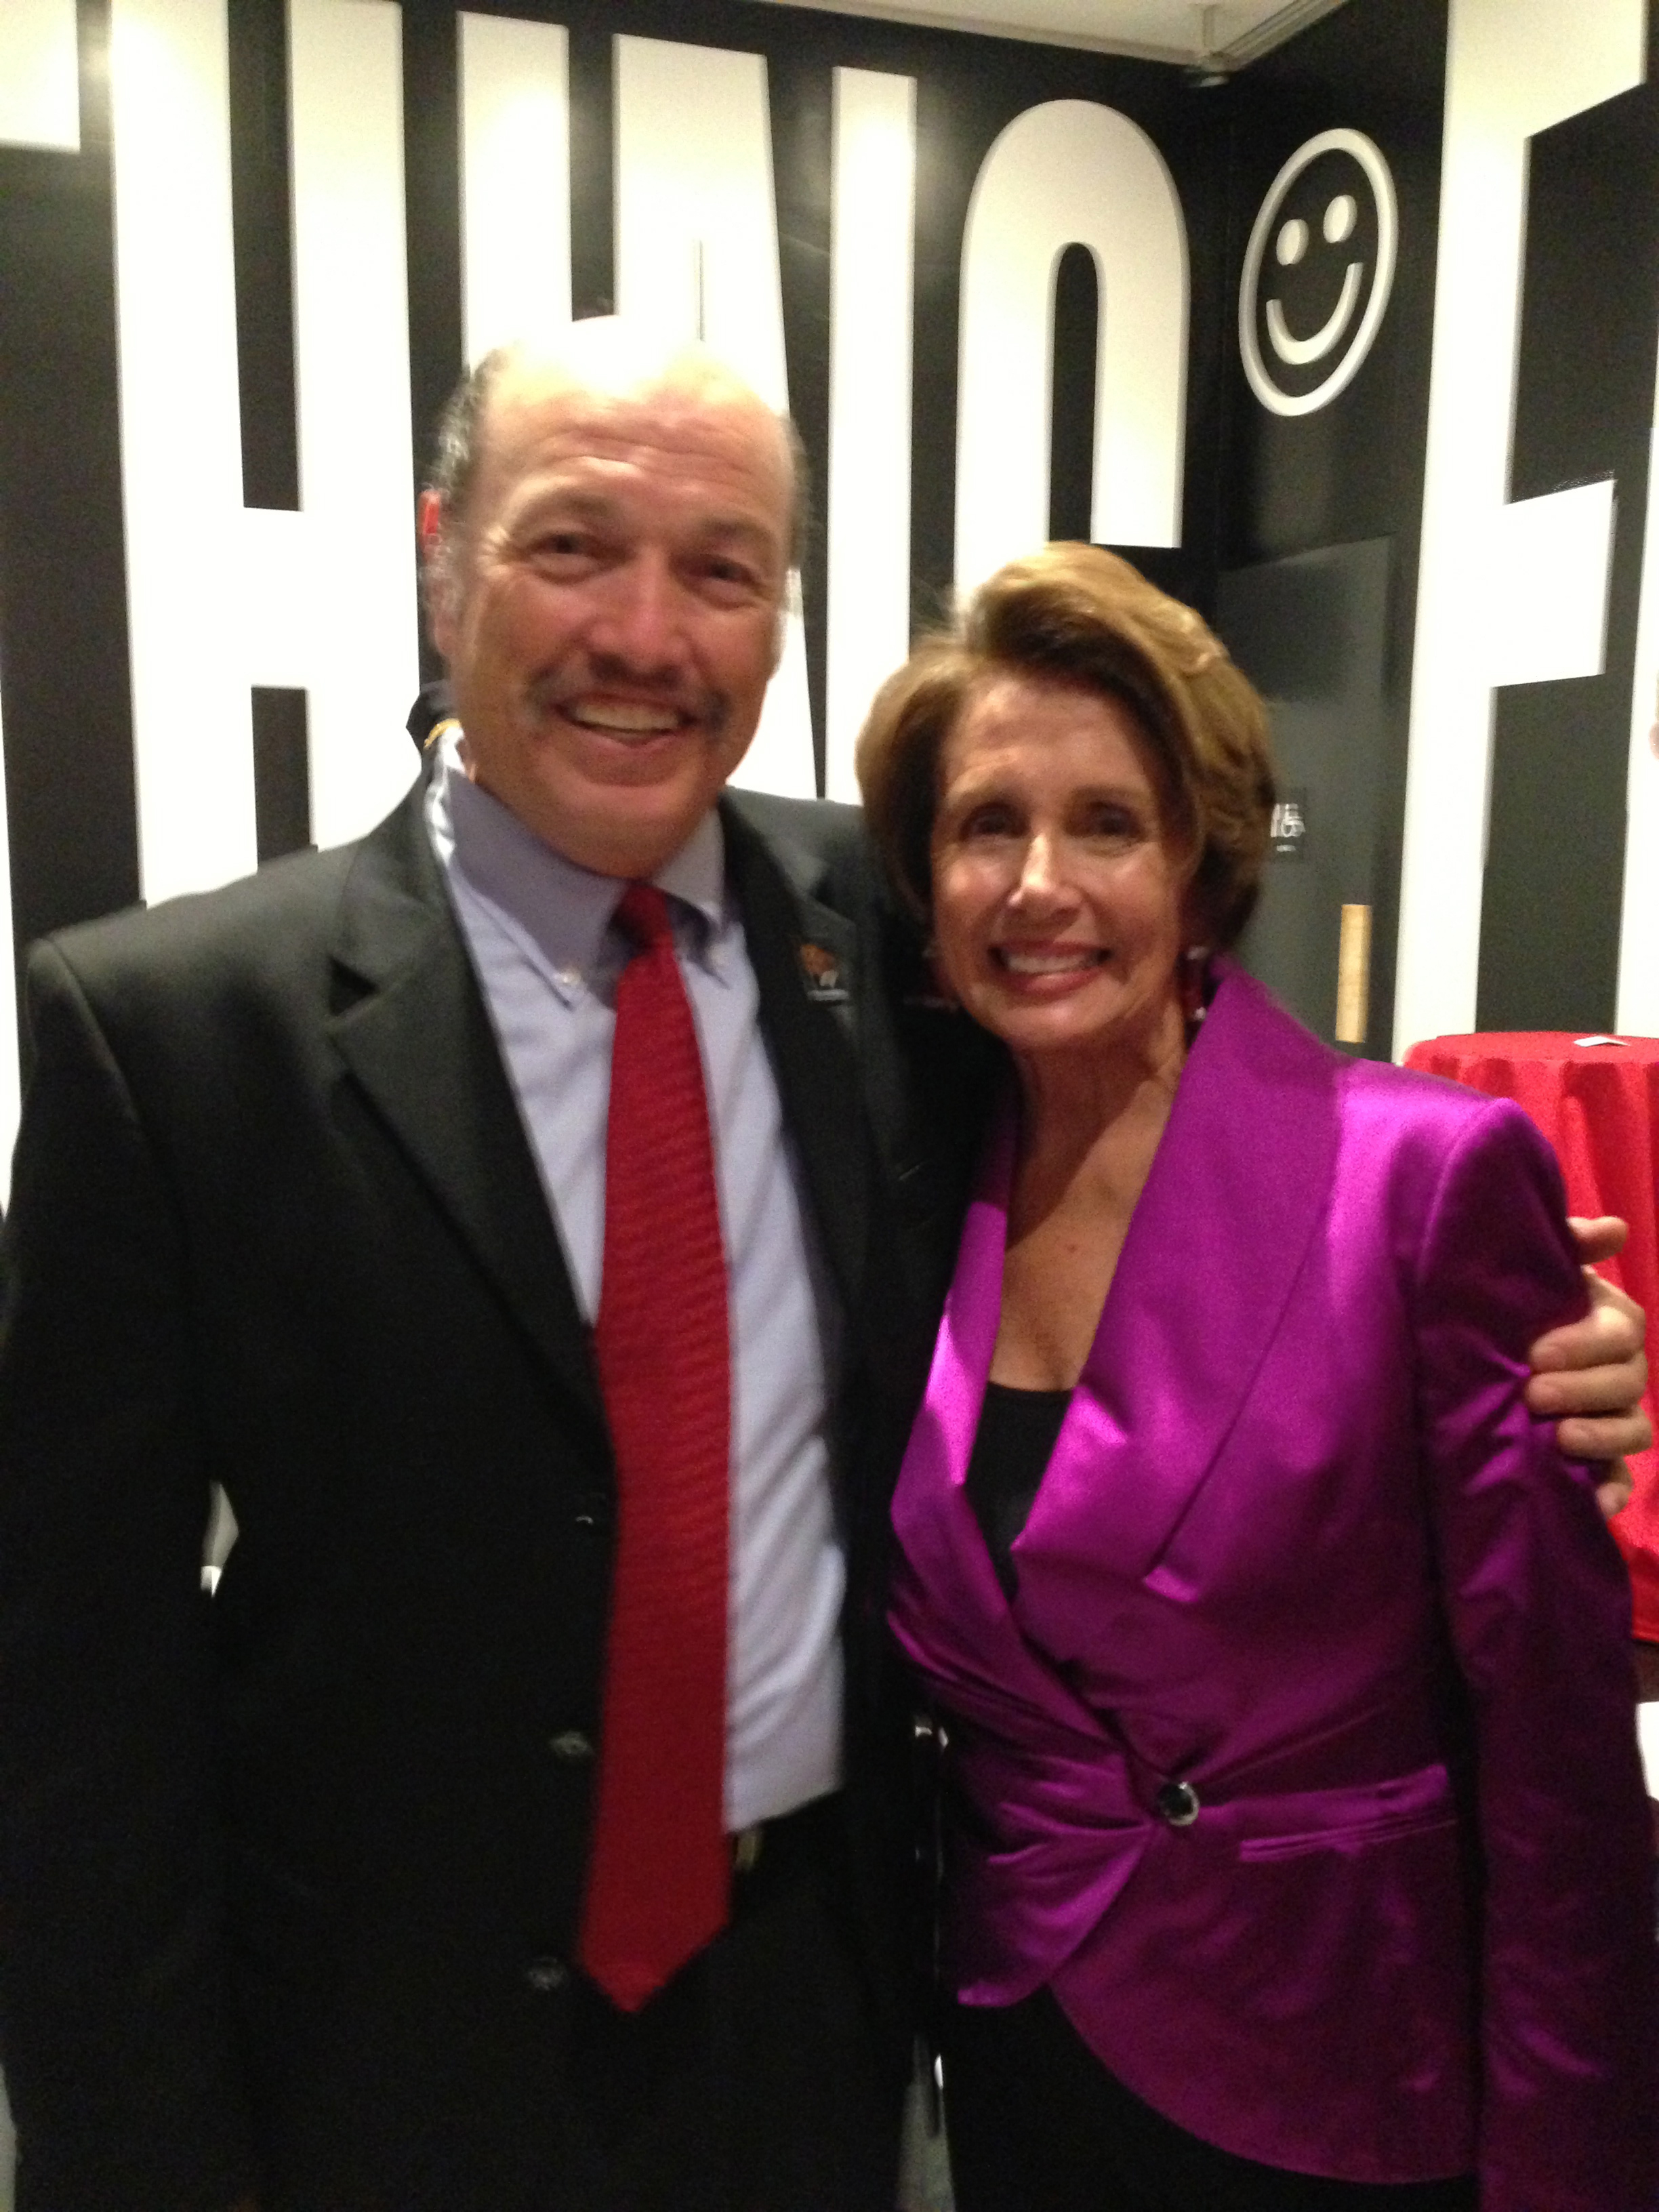 Tony with former Speaker of the House Nancy Pelosi